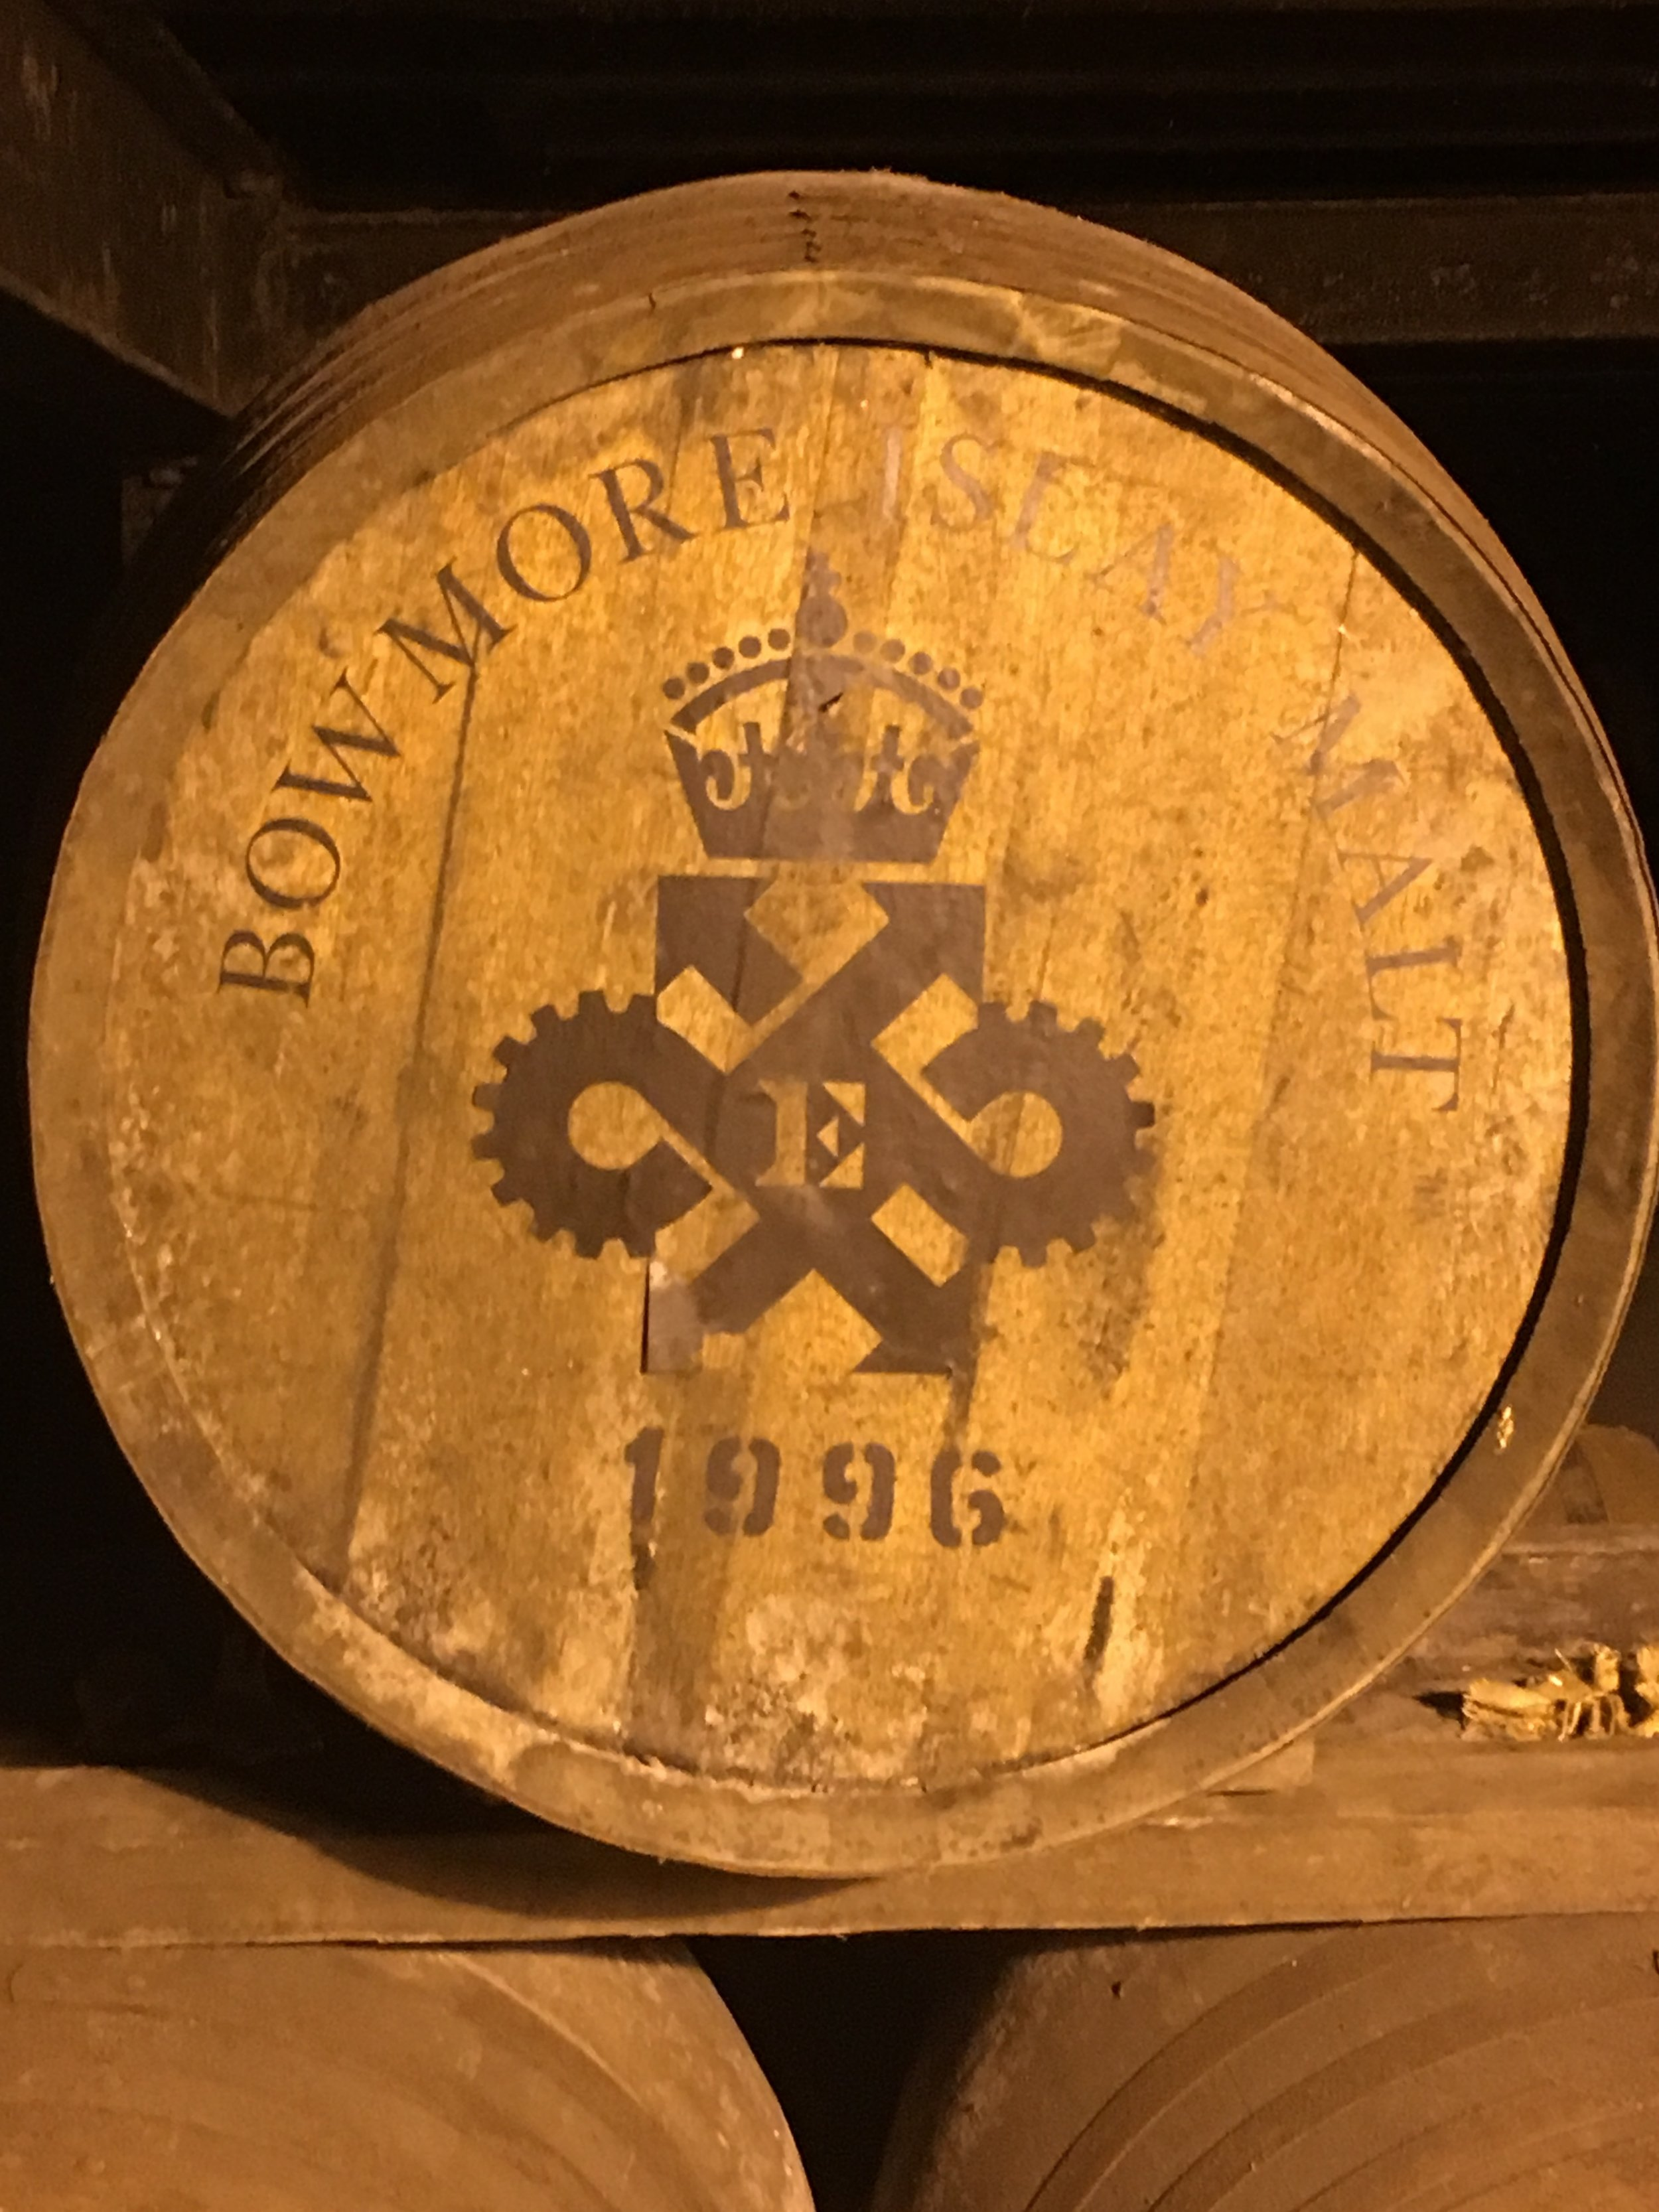 Maturing Cask at Bowmore Distillery